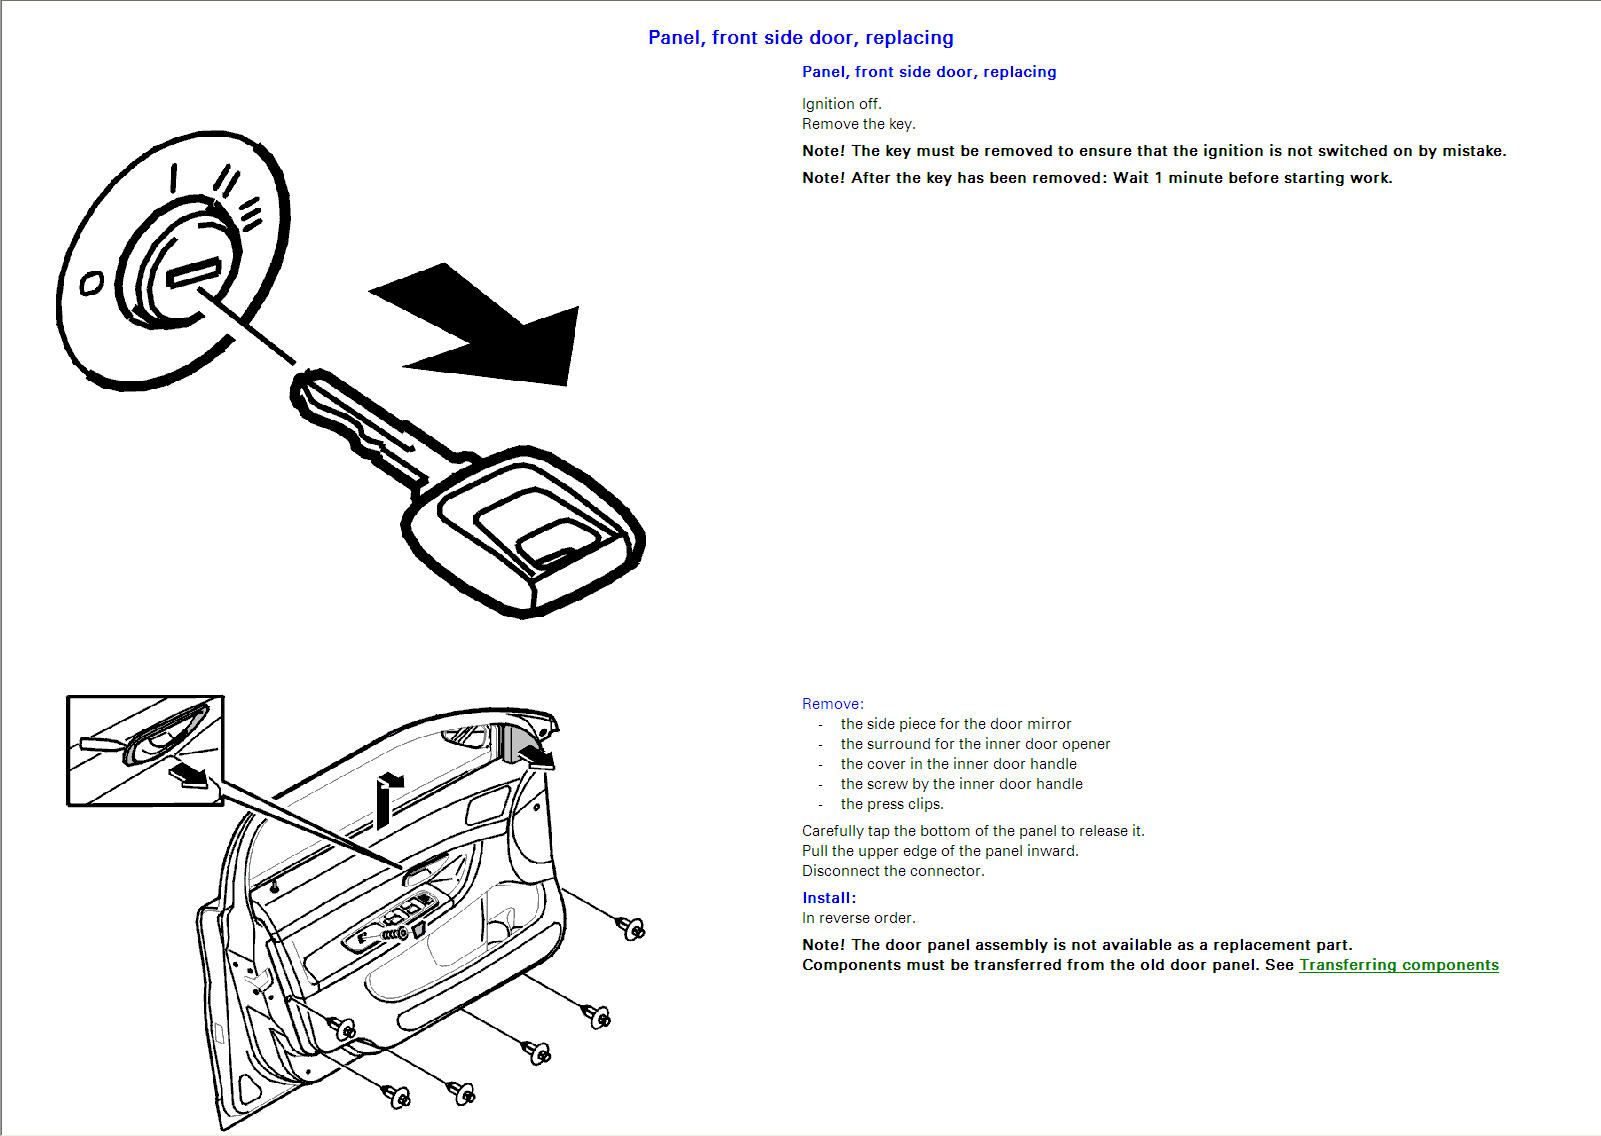 2003 Volvo S60 Body Parts Diagram Wiring Will Be A Thing 2004 Headlight Harness V70 Door U2022 For Free 2012 Fuses